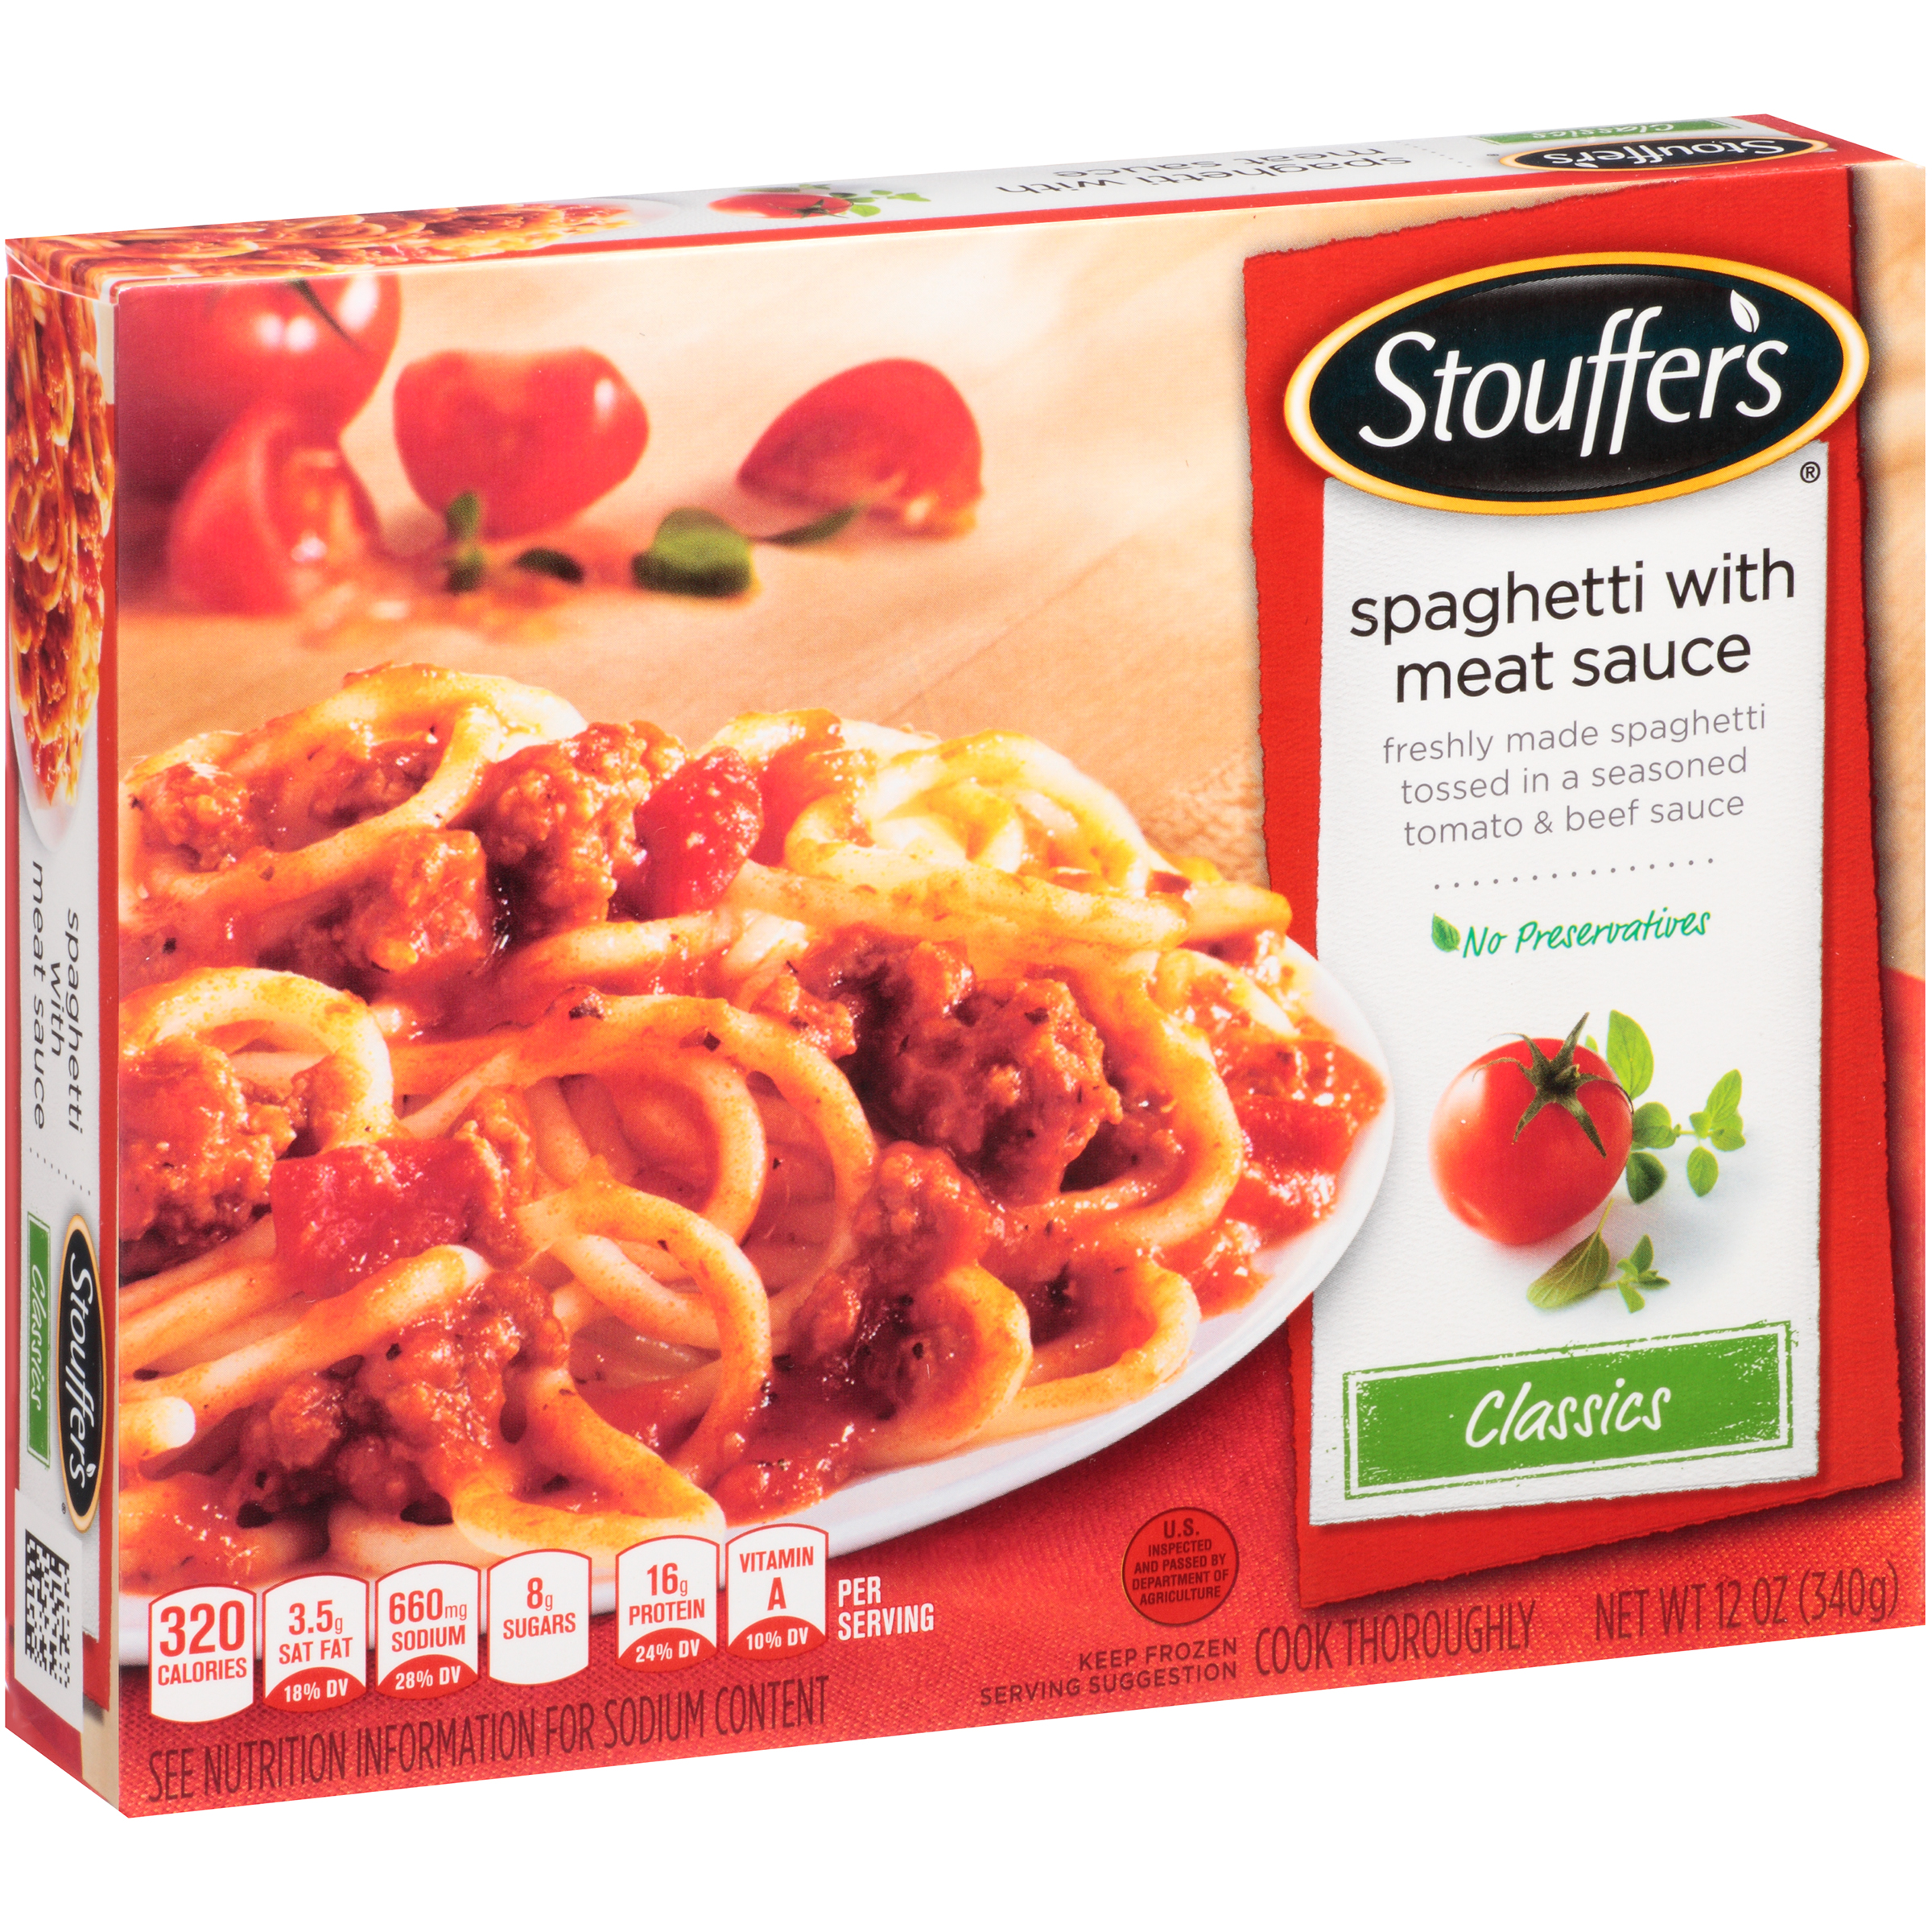 STOUFFER'S Classics Spaghetti with Meat Sauce 12 oz. Box